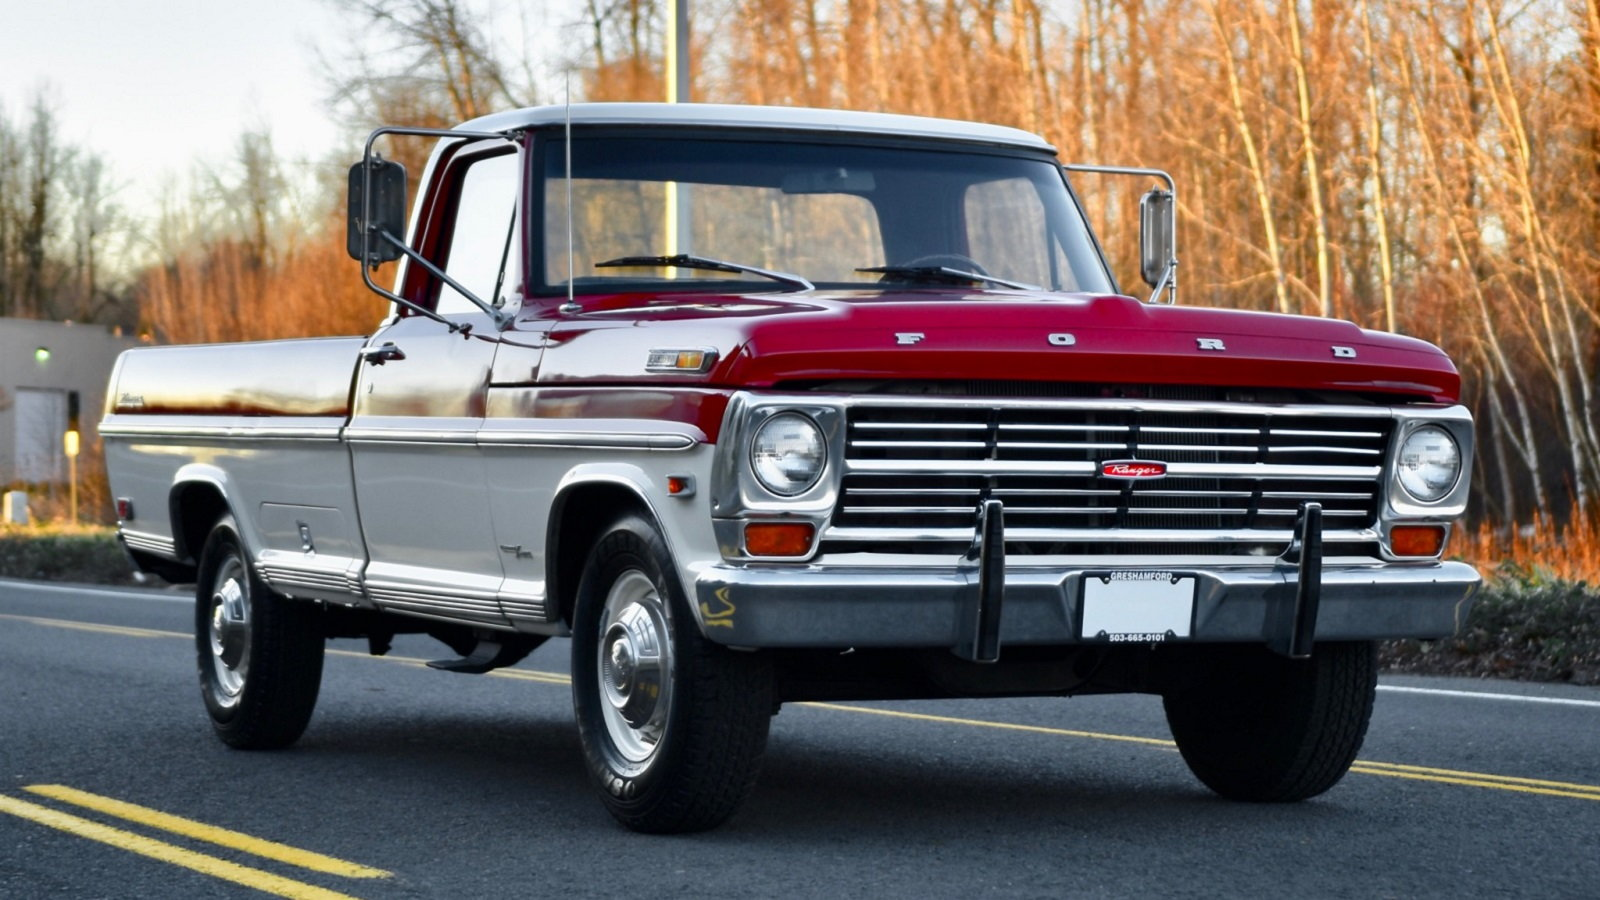 Beautiful 1968 Ford F-250 Camper Special Looks No Worse for Wear